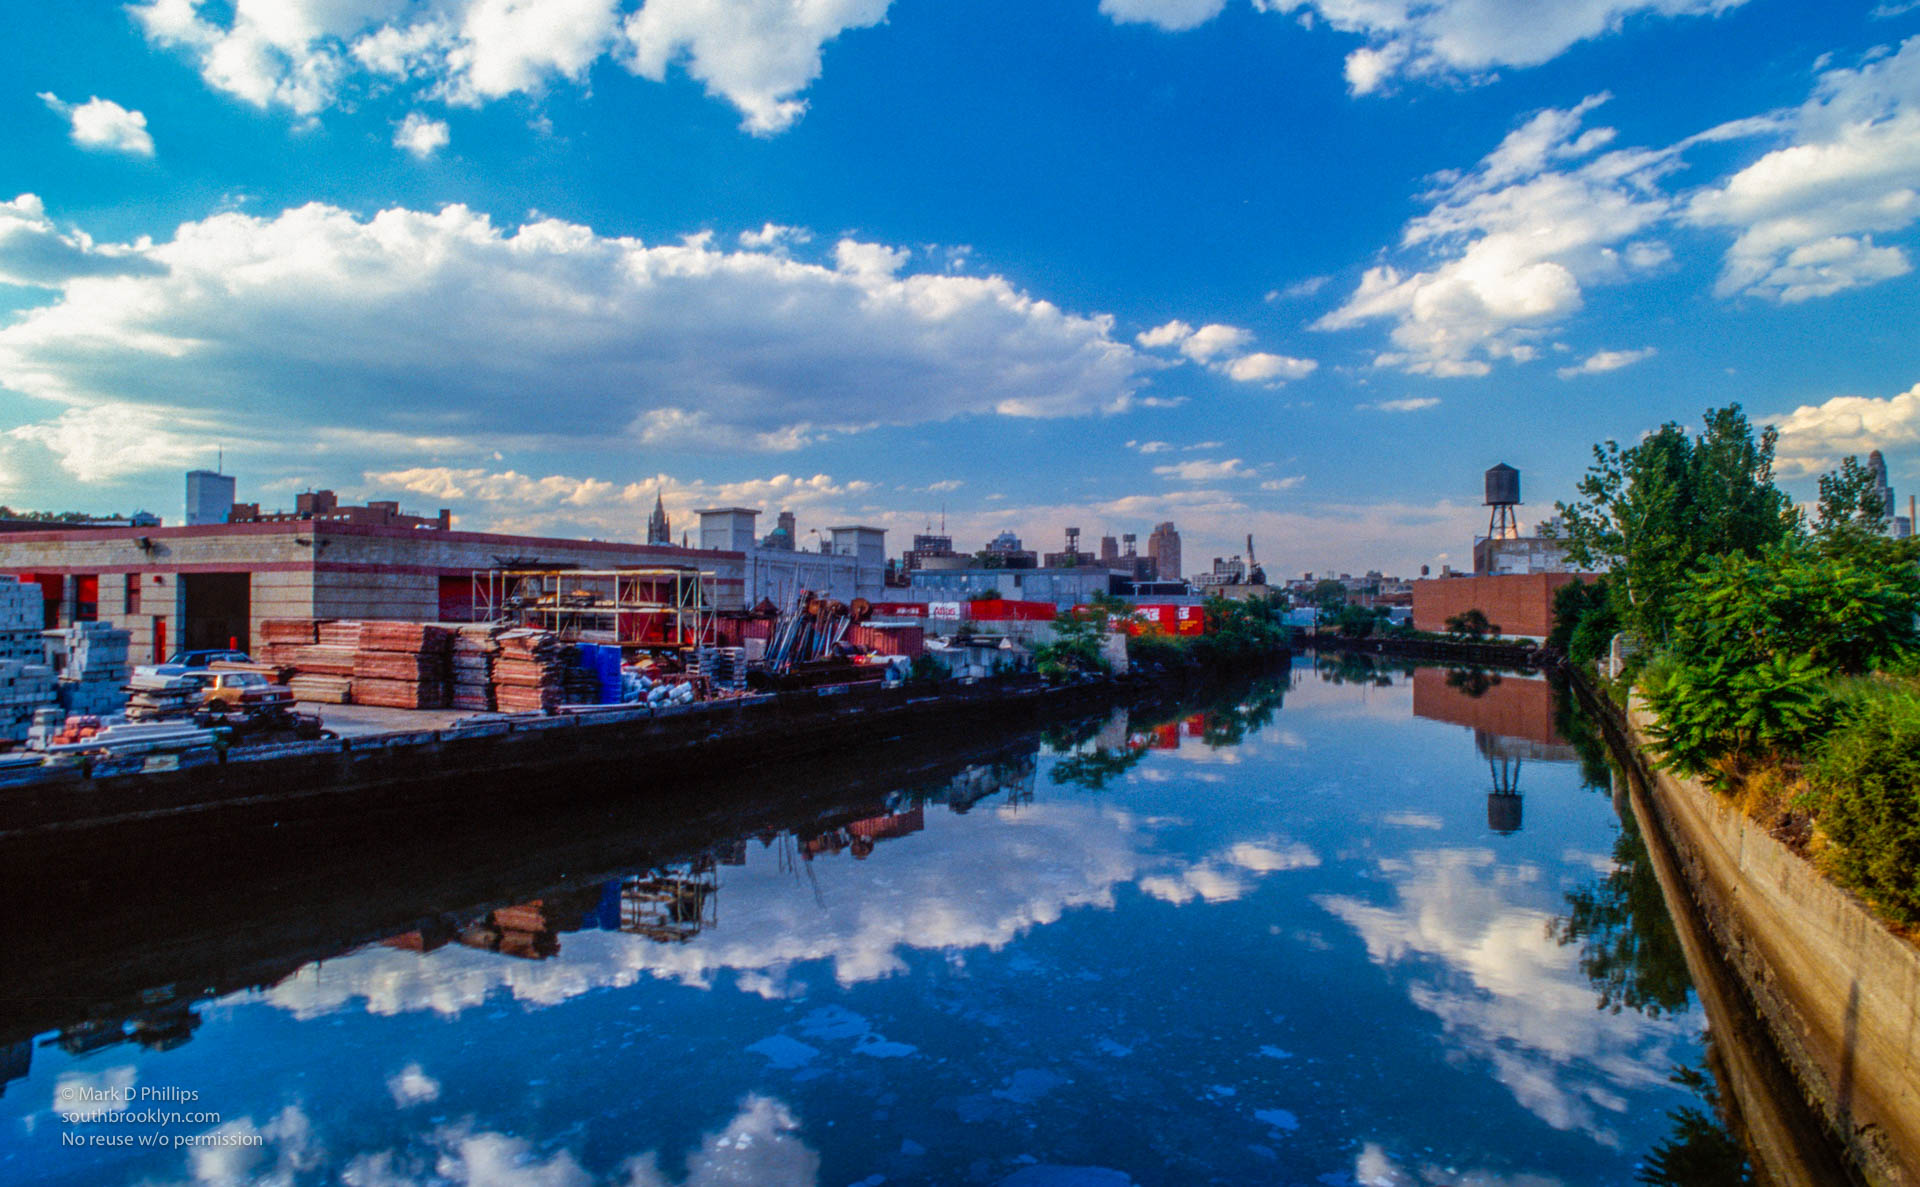 Clouds reflect in the water of the Gowanus Canal looking north with the Twin Towers peeking above the shoreline in 1989. The wall reflected in the water has no graffiti in 1989 and has now joined the past. ©Mark D Phillips